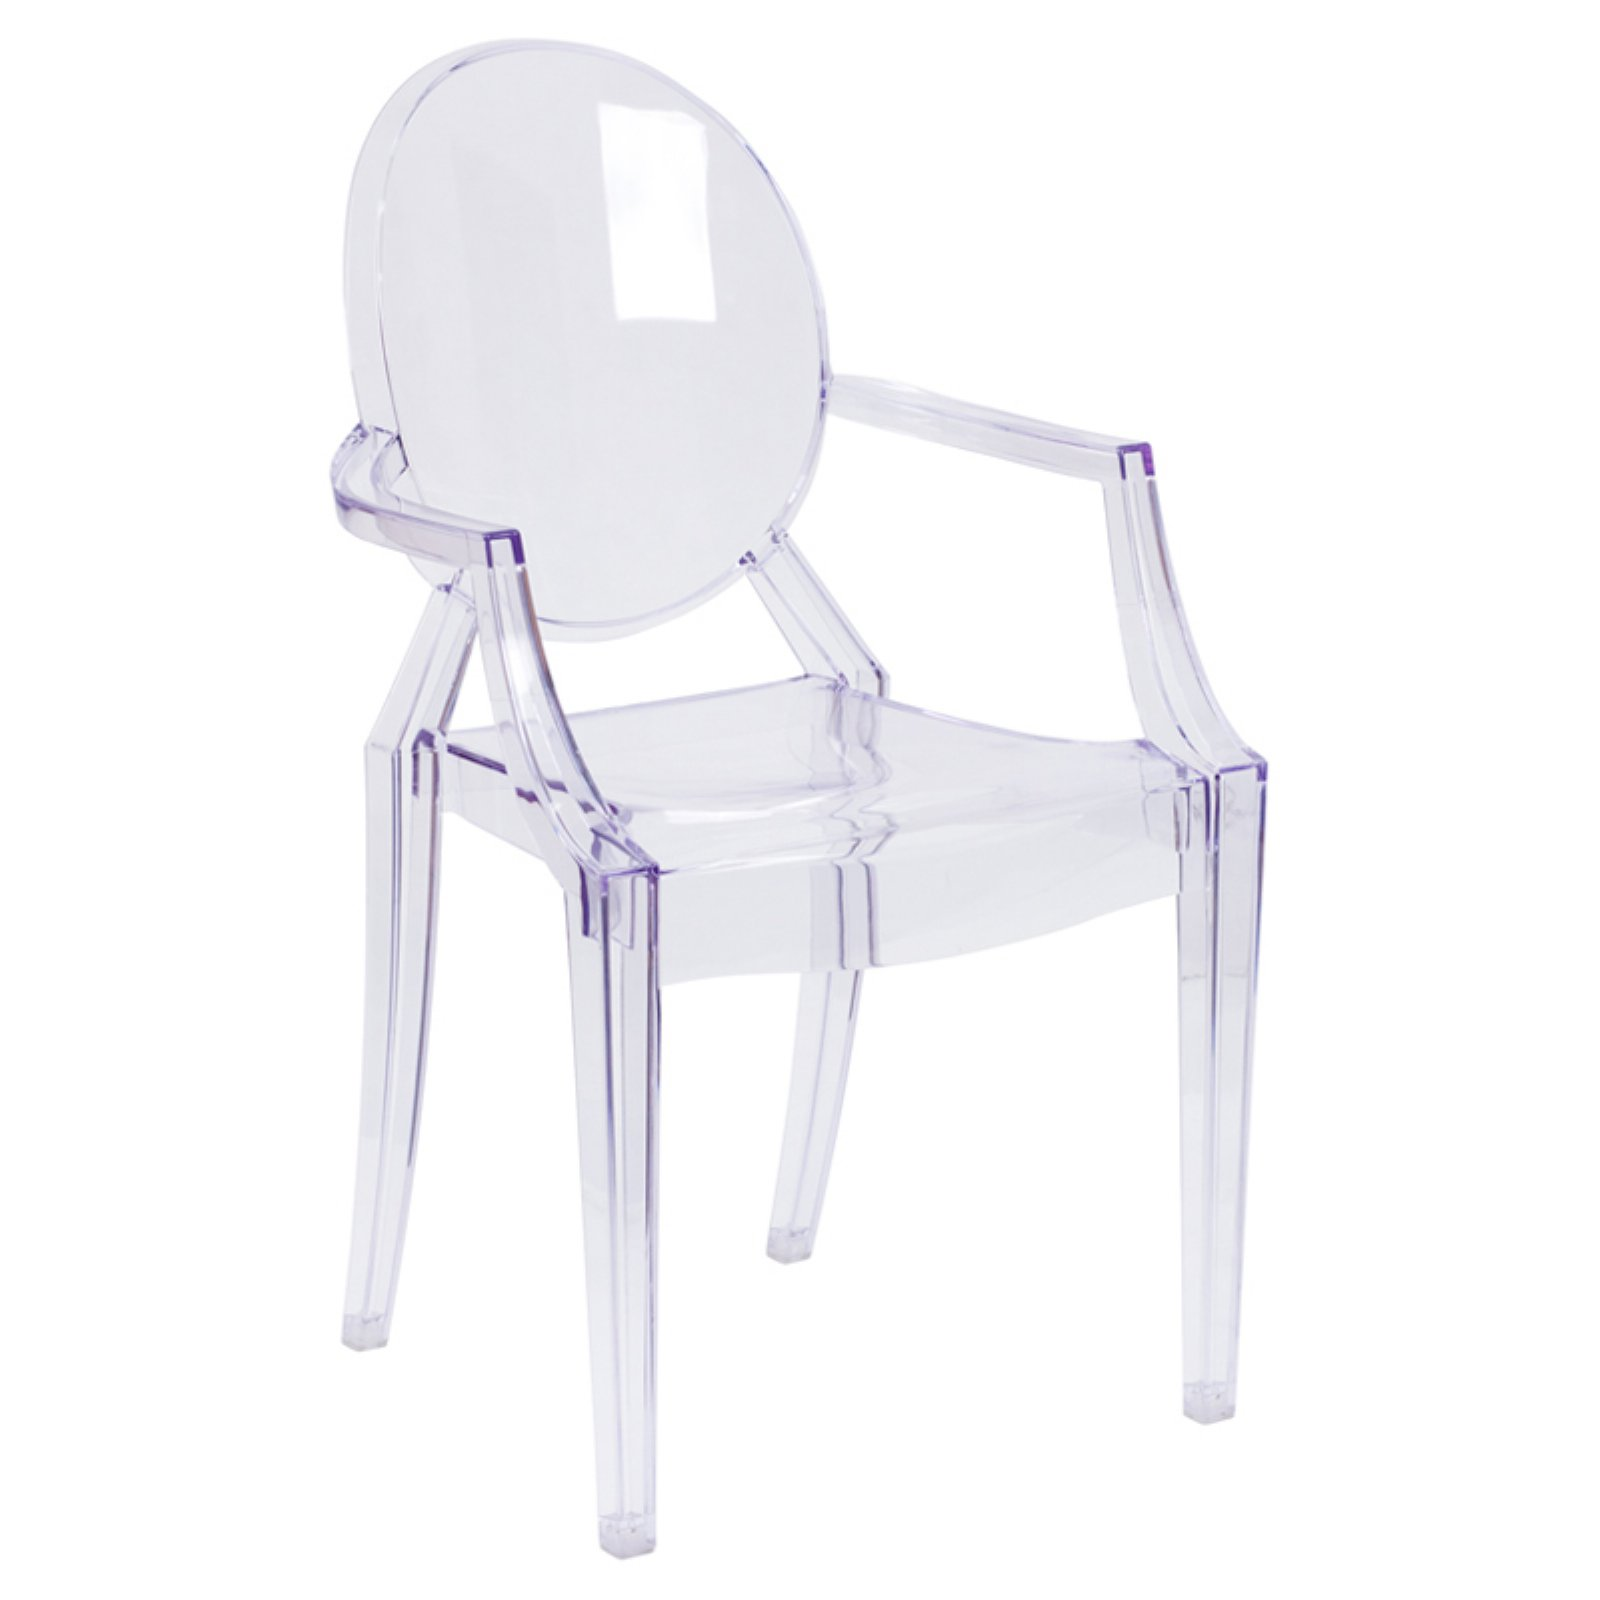 Delicieux Flash Furniture Transparent Crystal Ghost Chair With Arms